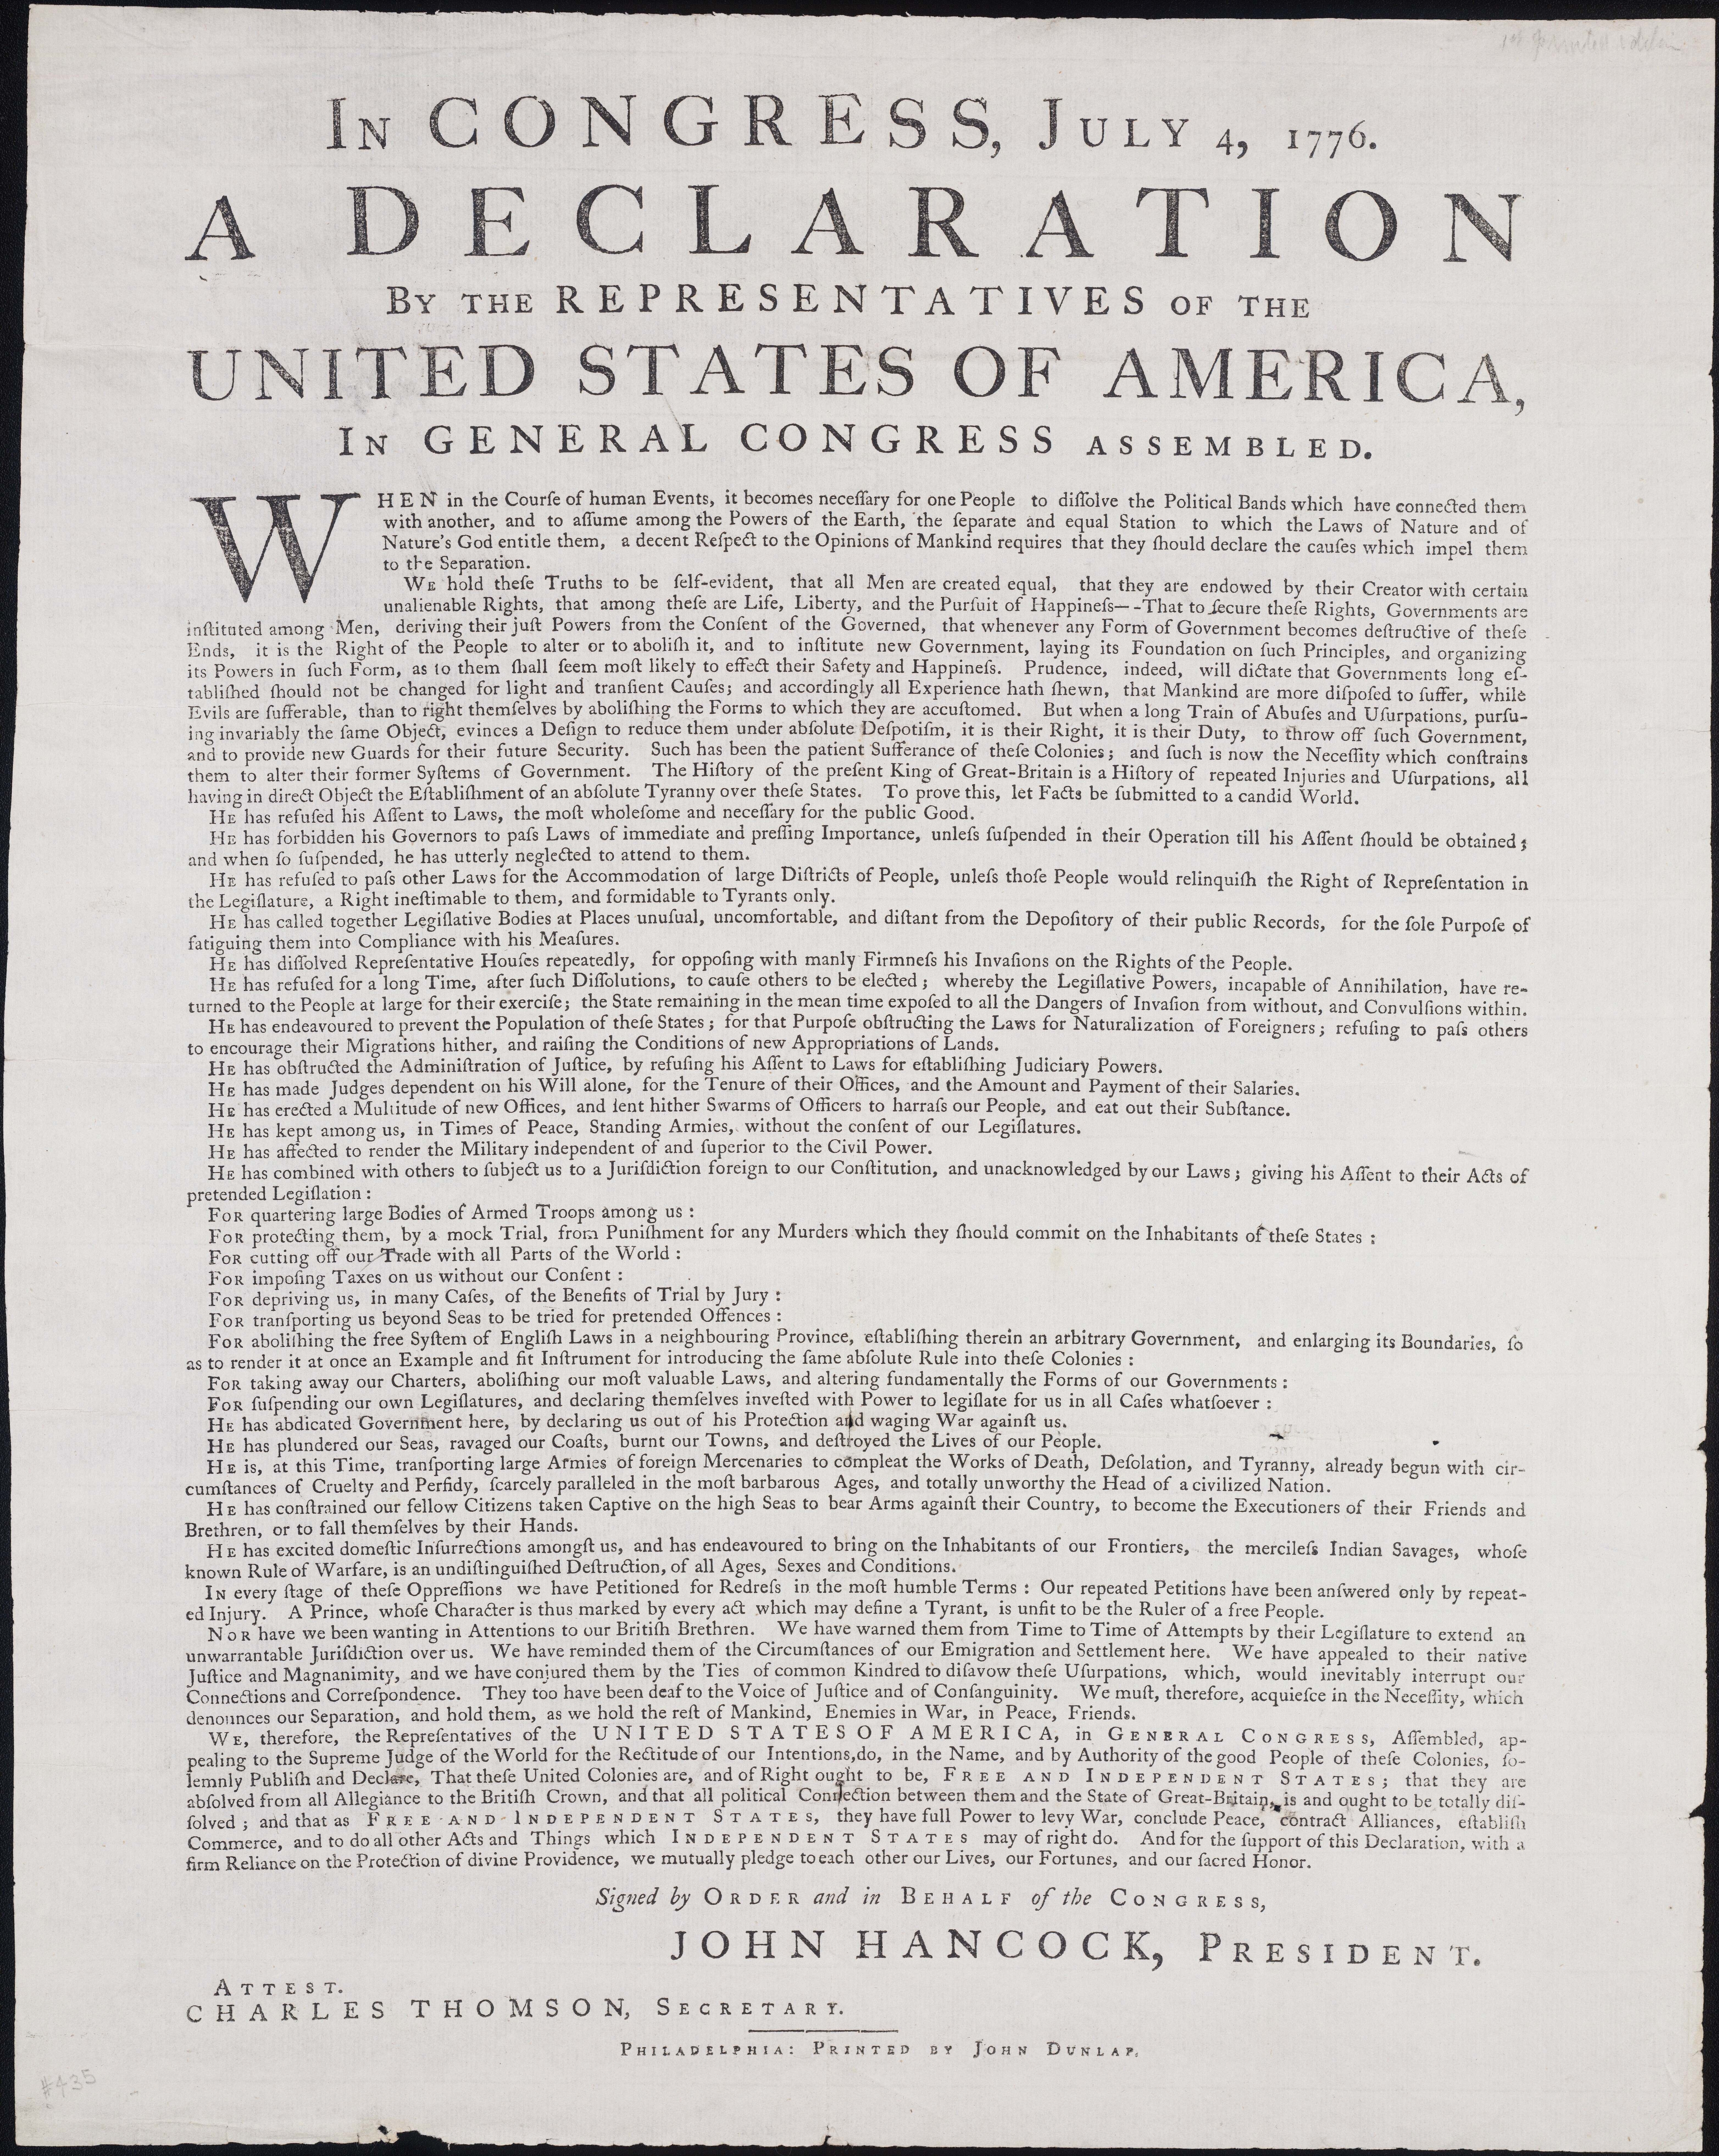 It is a photo of Printable Copy of the Declaration of Independence intended for decoration